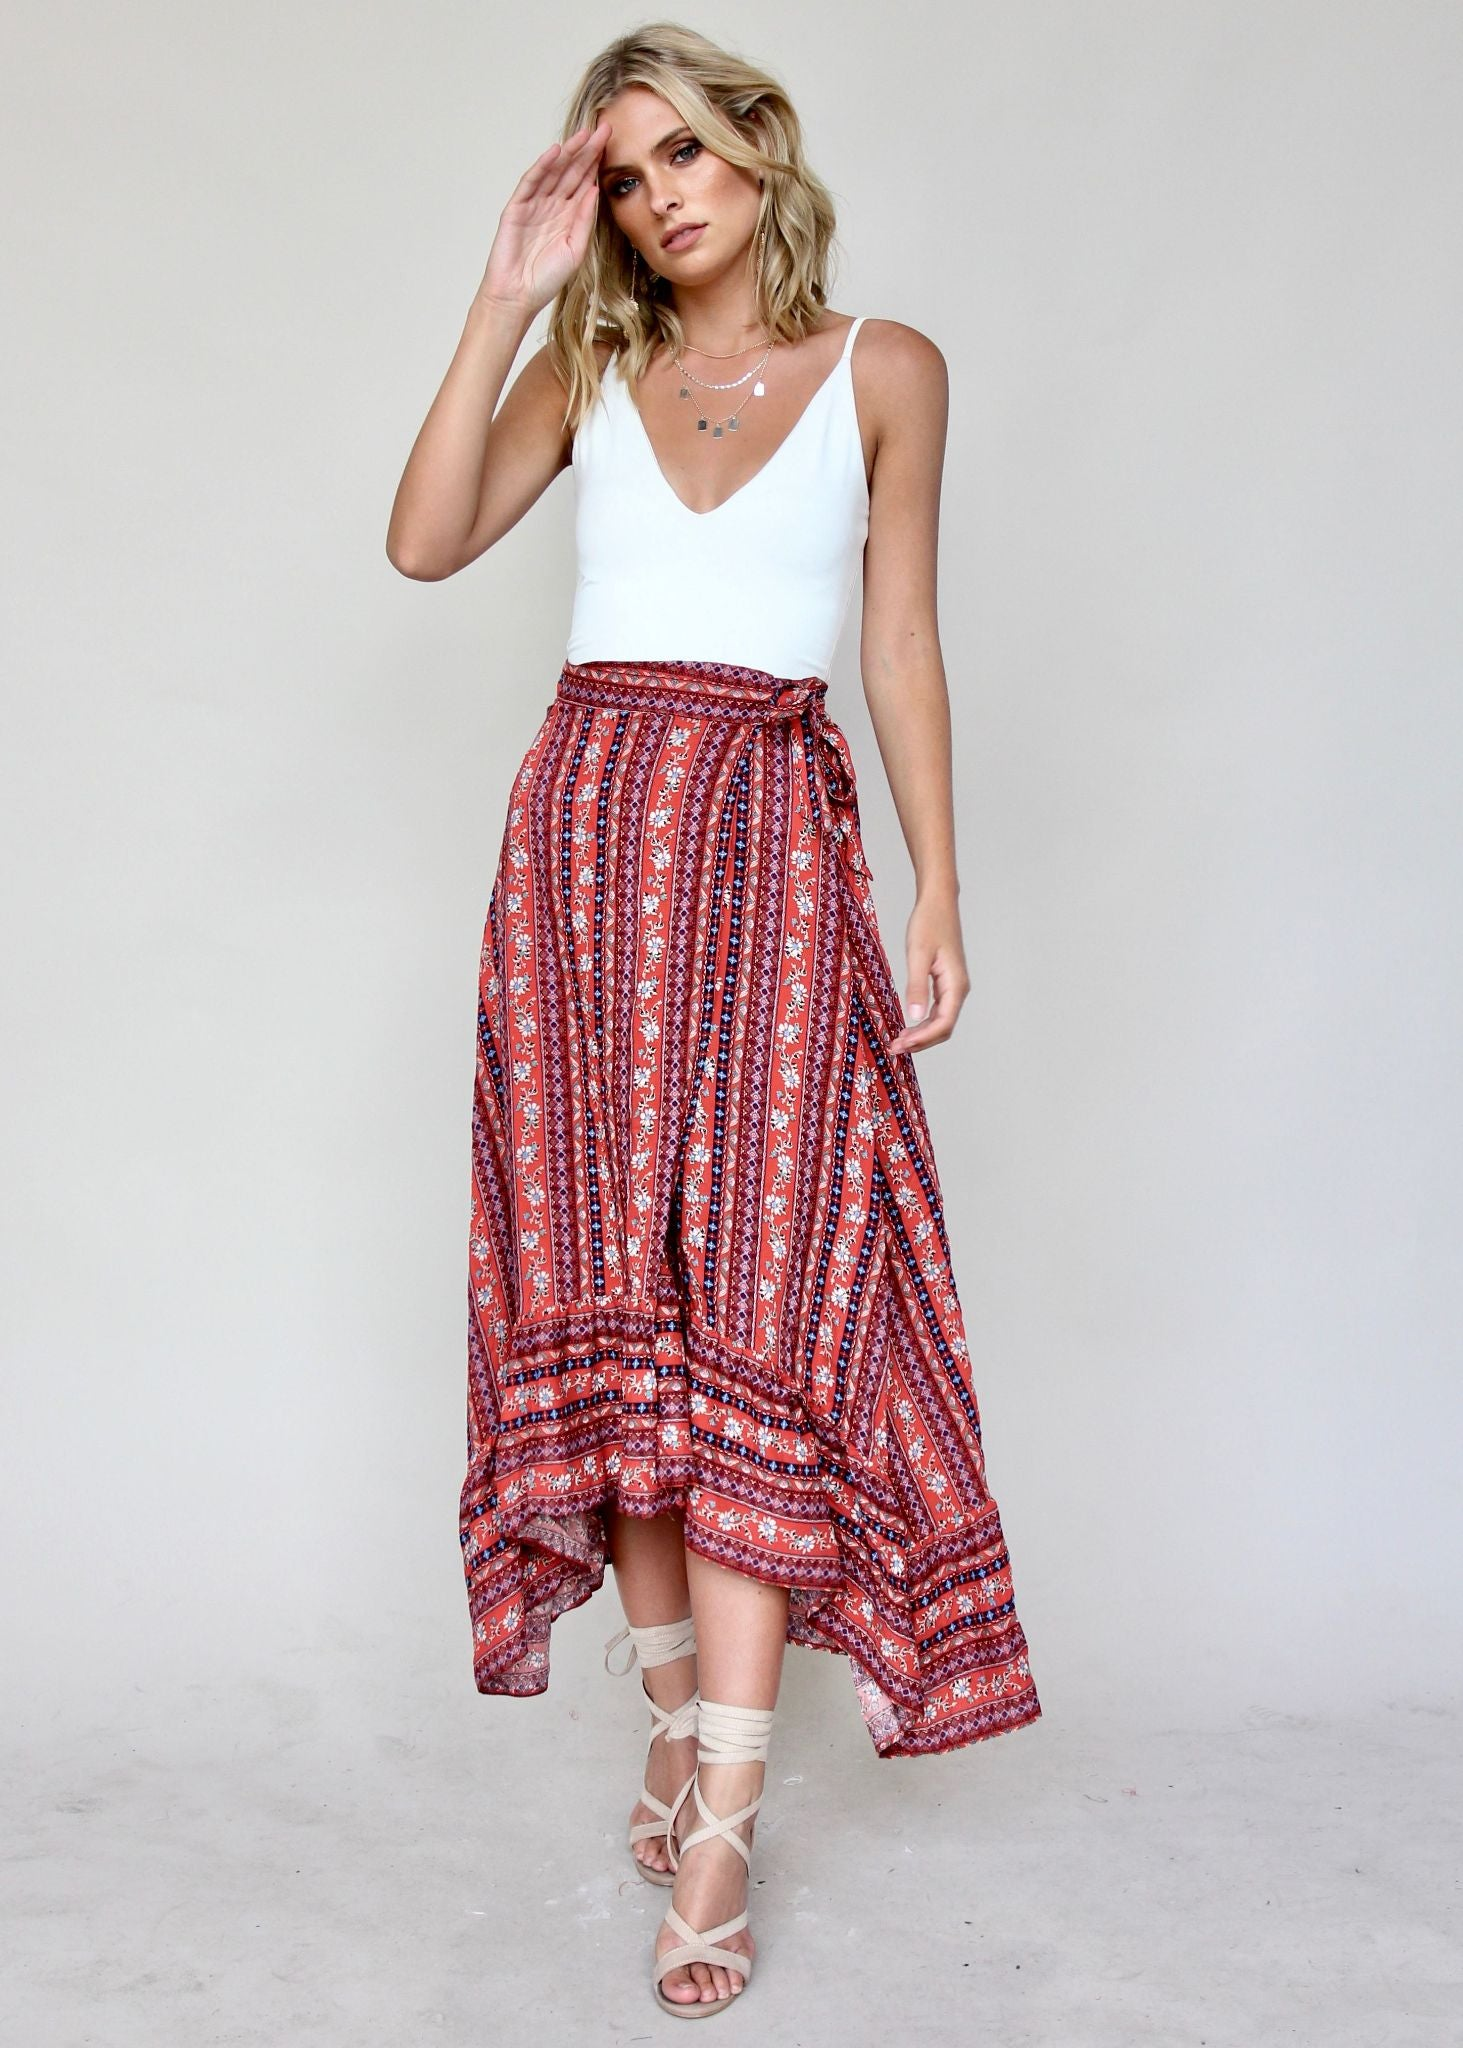 Magic Woman Wrap Skirt - Summer Night